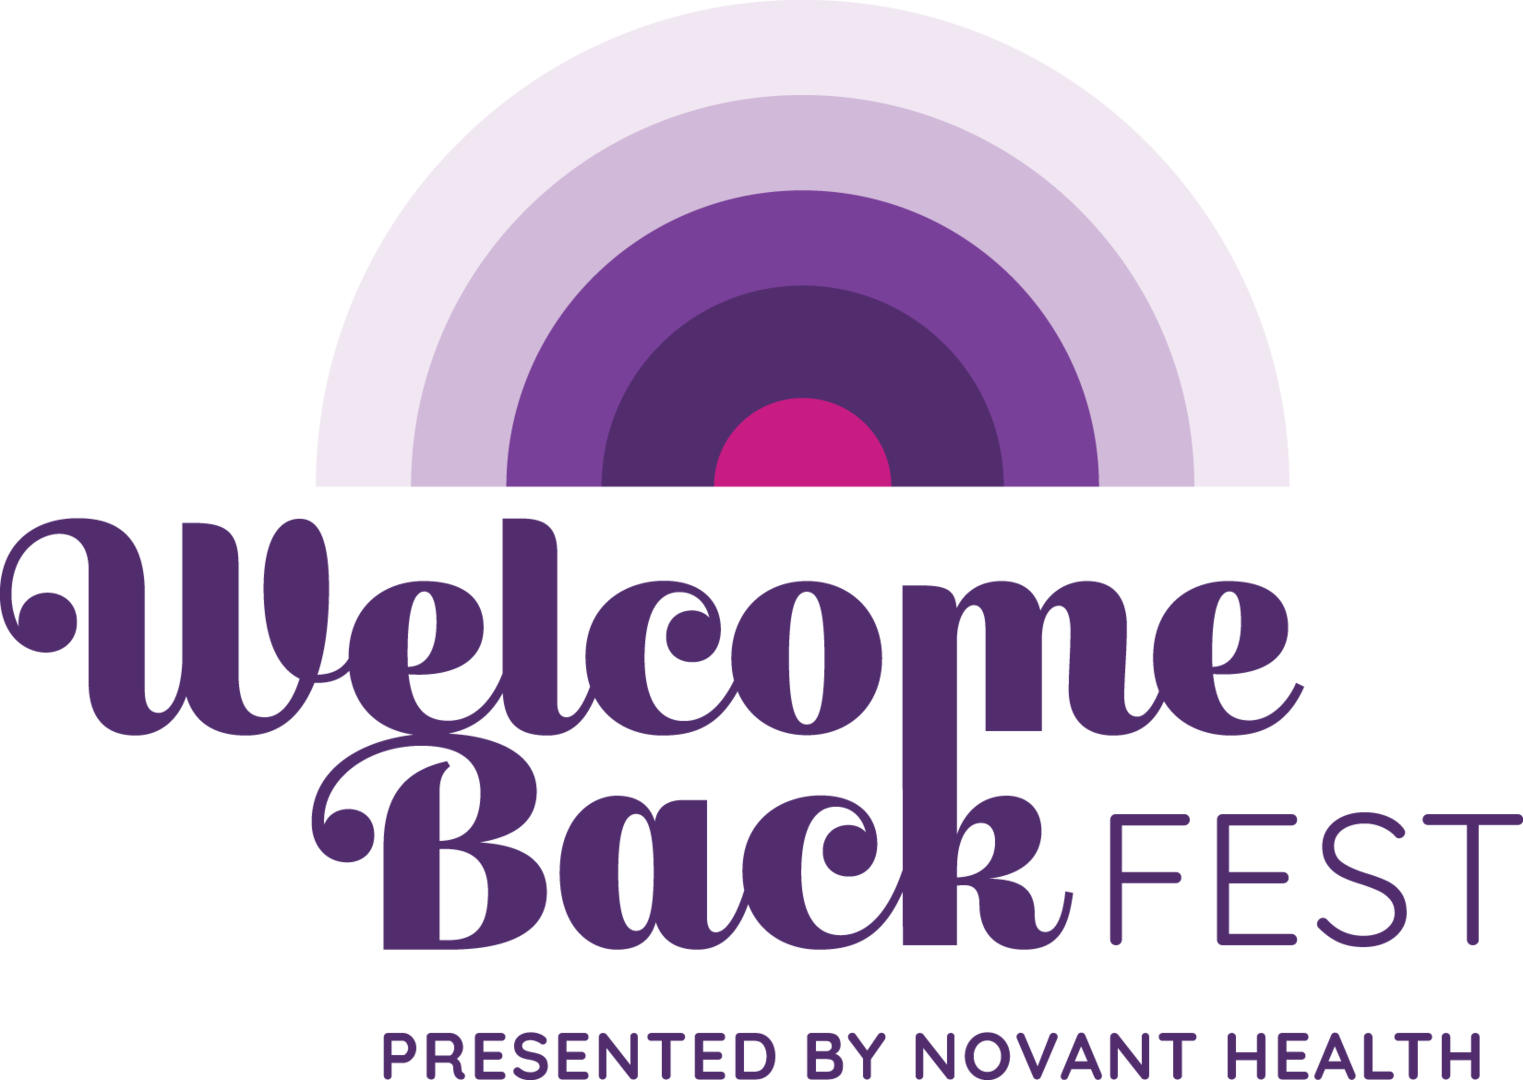 Welcome Back Fest Presented by Novant Health